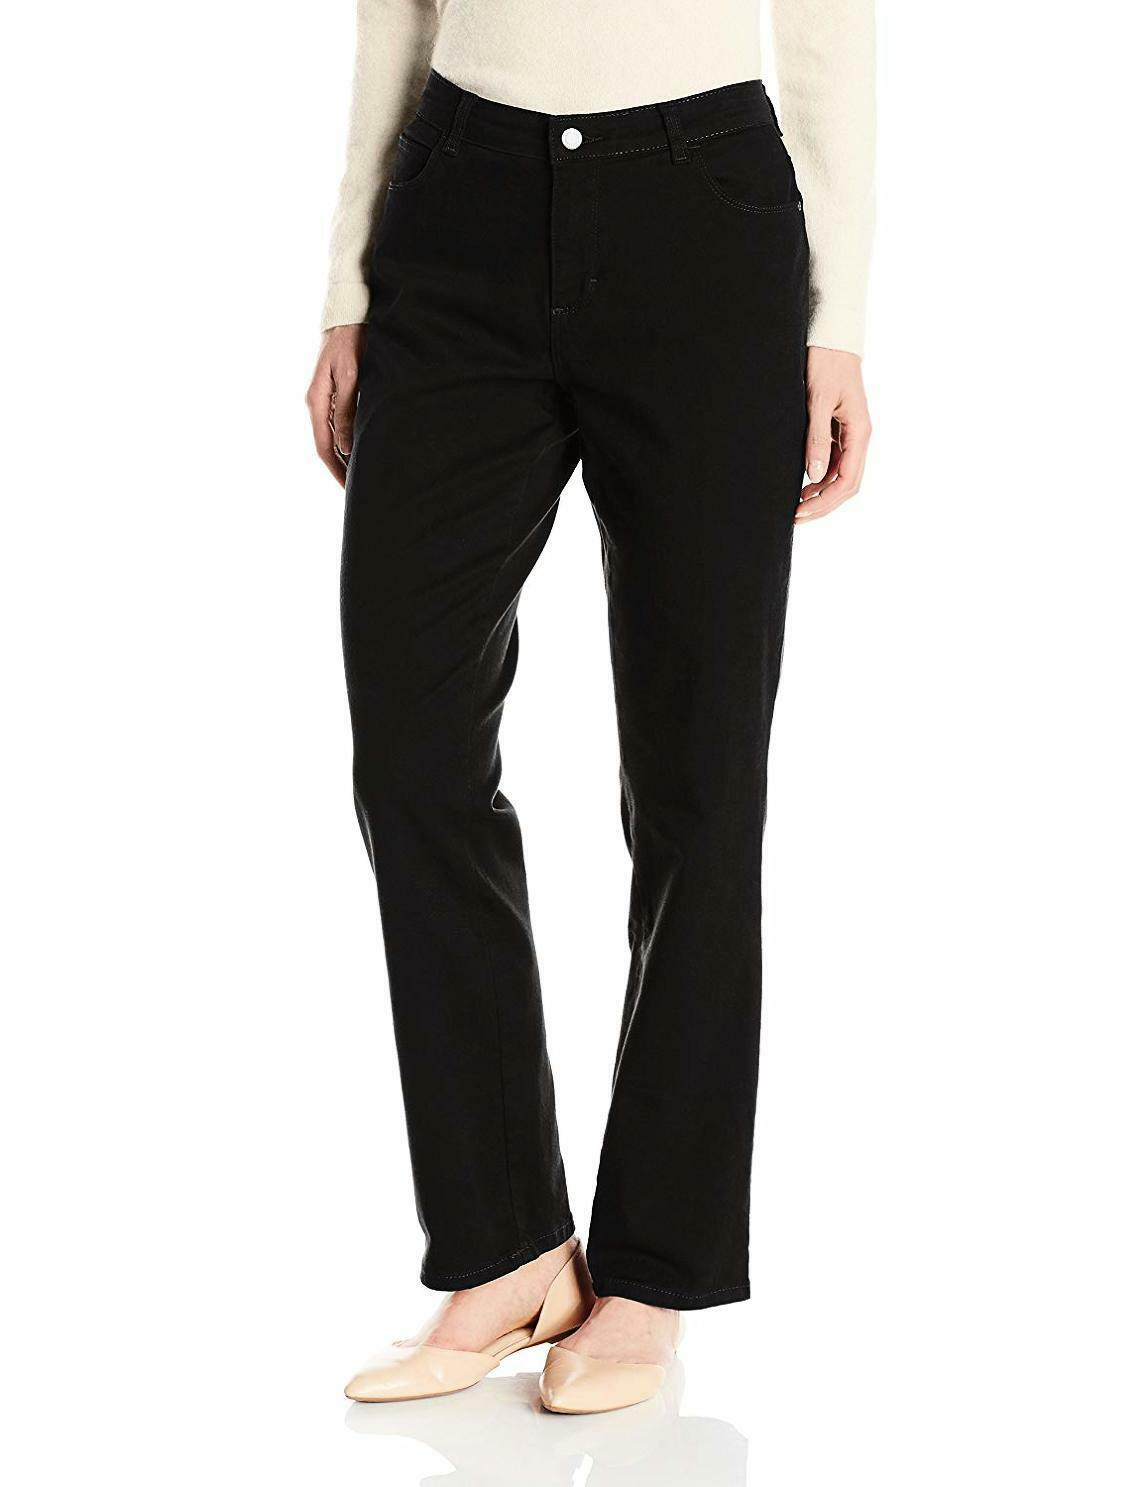 LEE Women's Relaxed Fit Straight Leg Jean - Womens Jeans - Choose SZ color